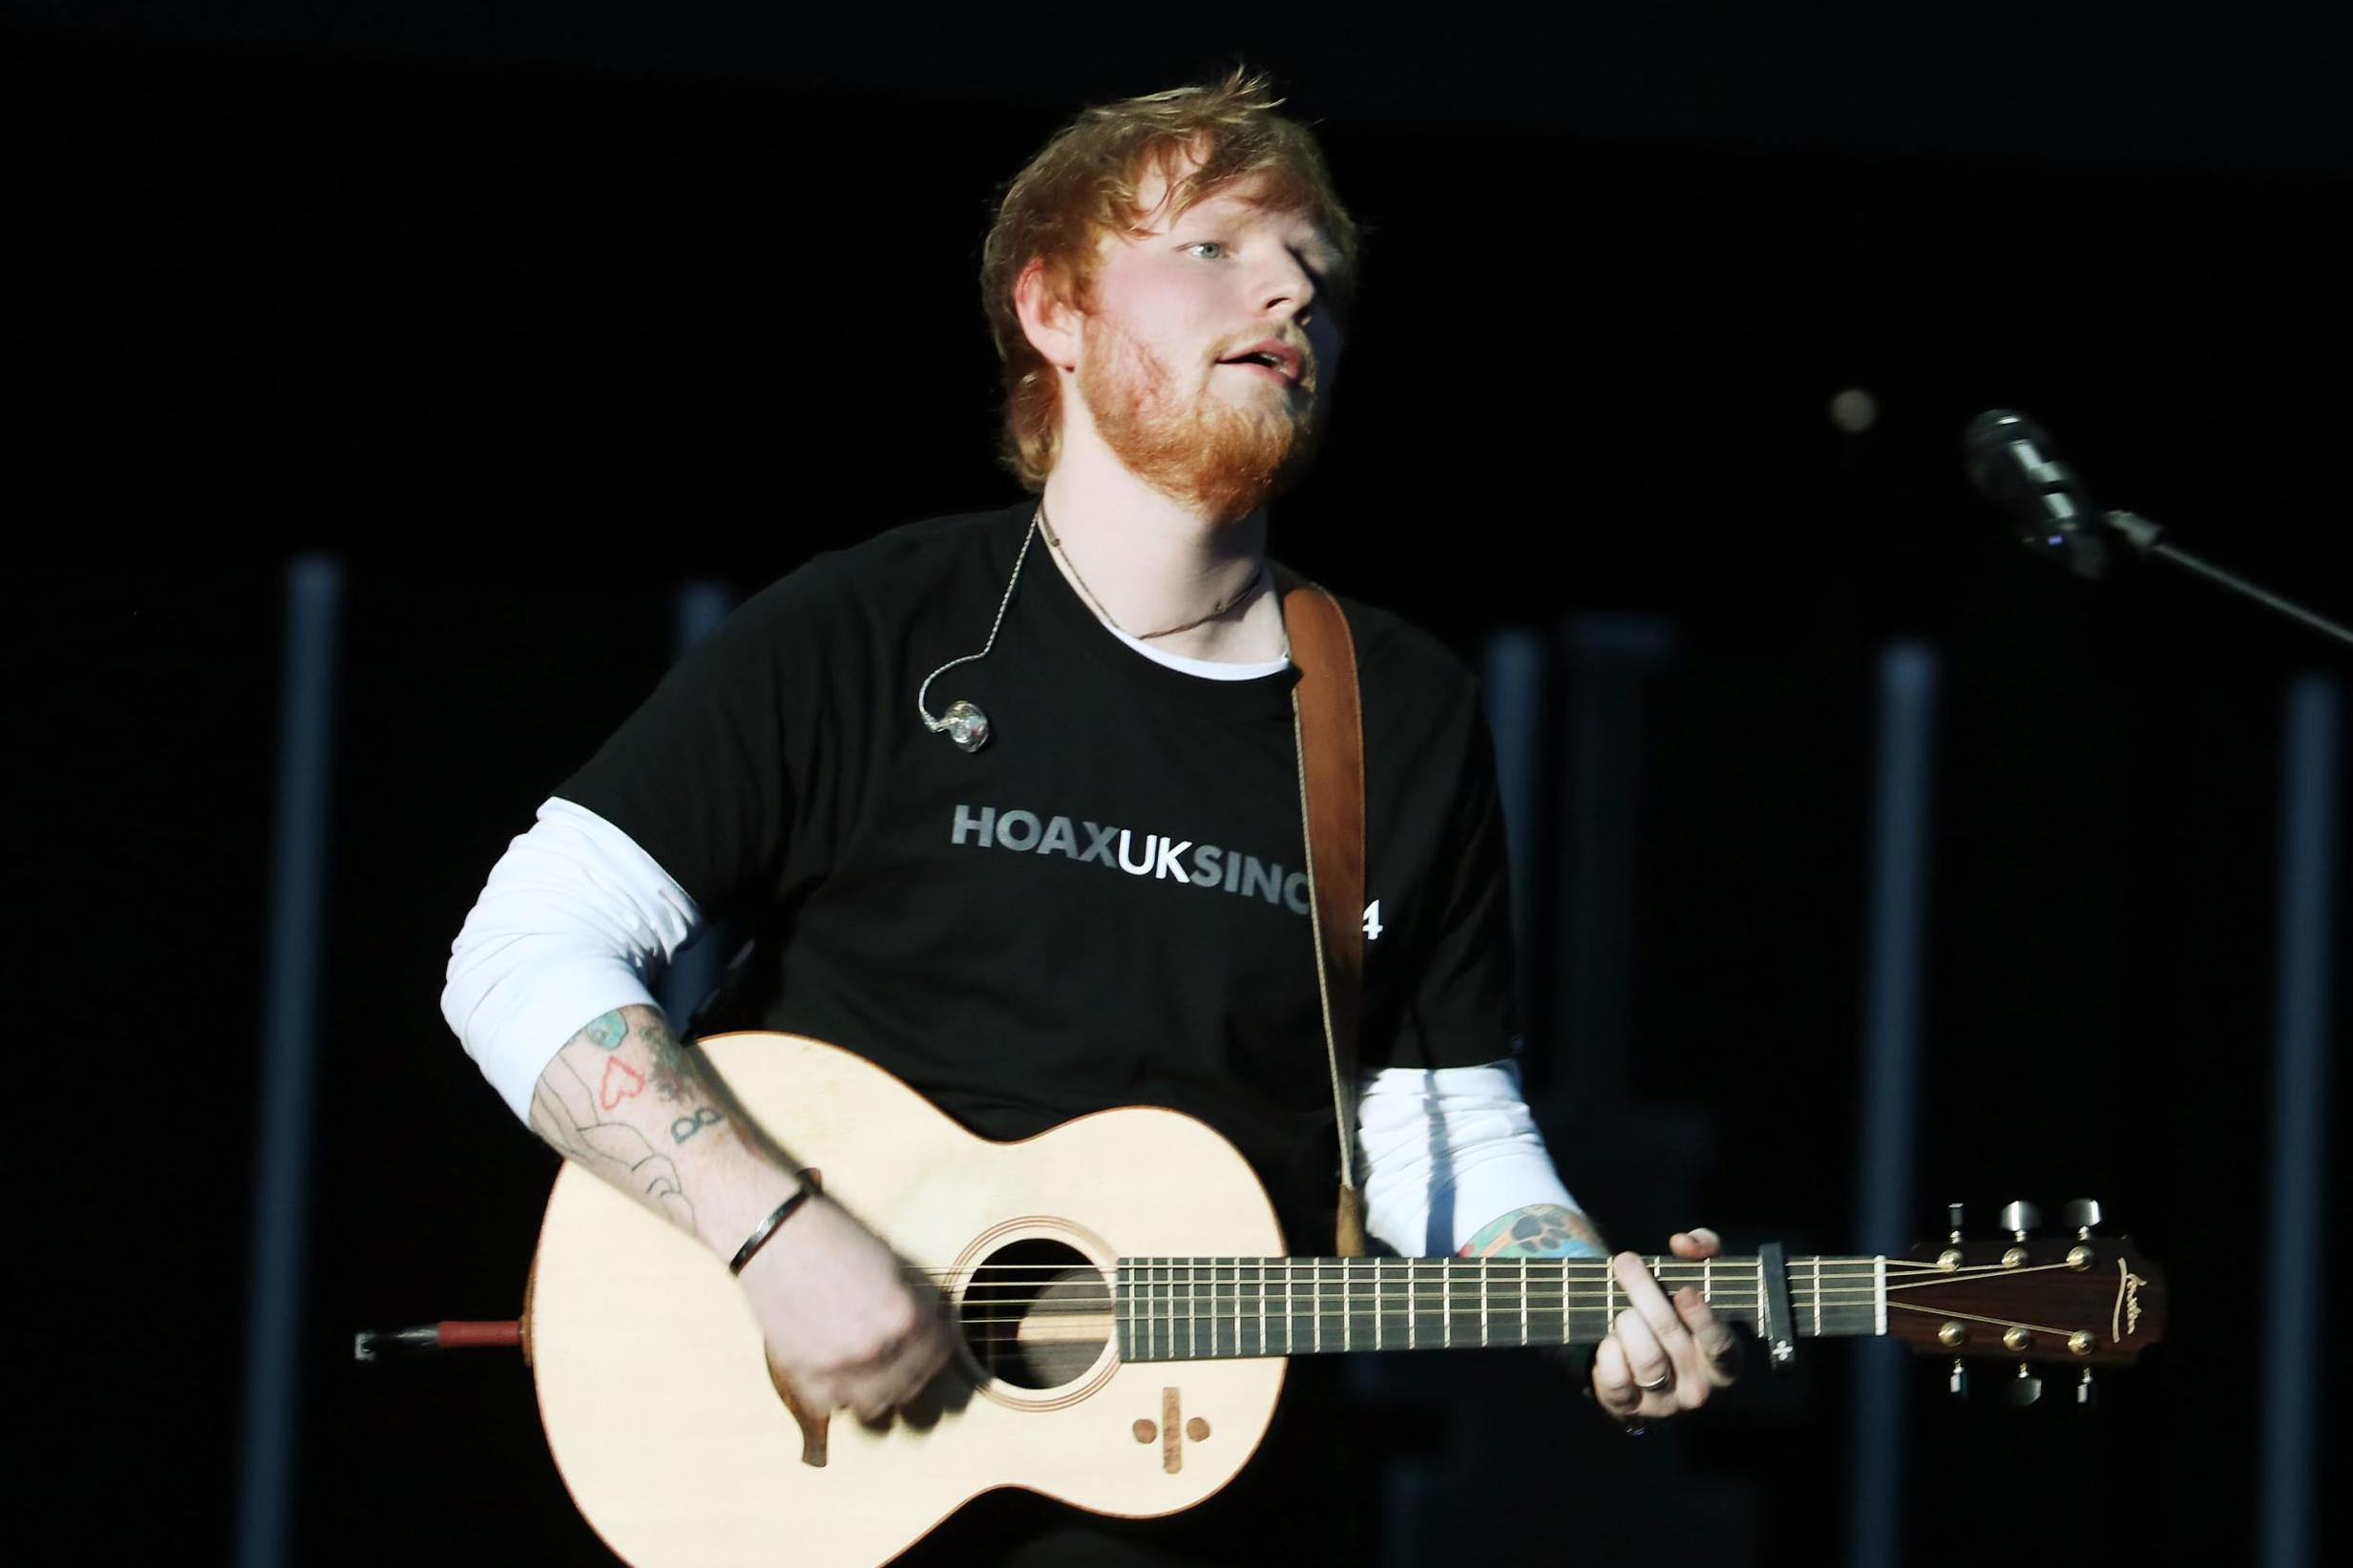 Ed Sheeran opens up pop-up stores for celebrating his new album